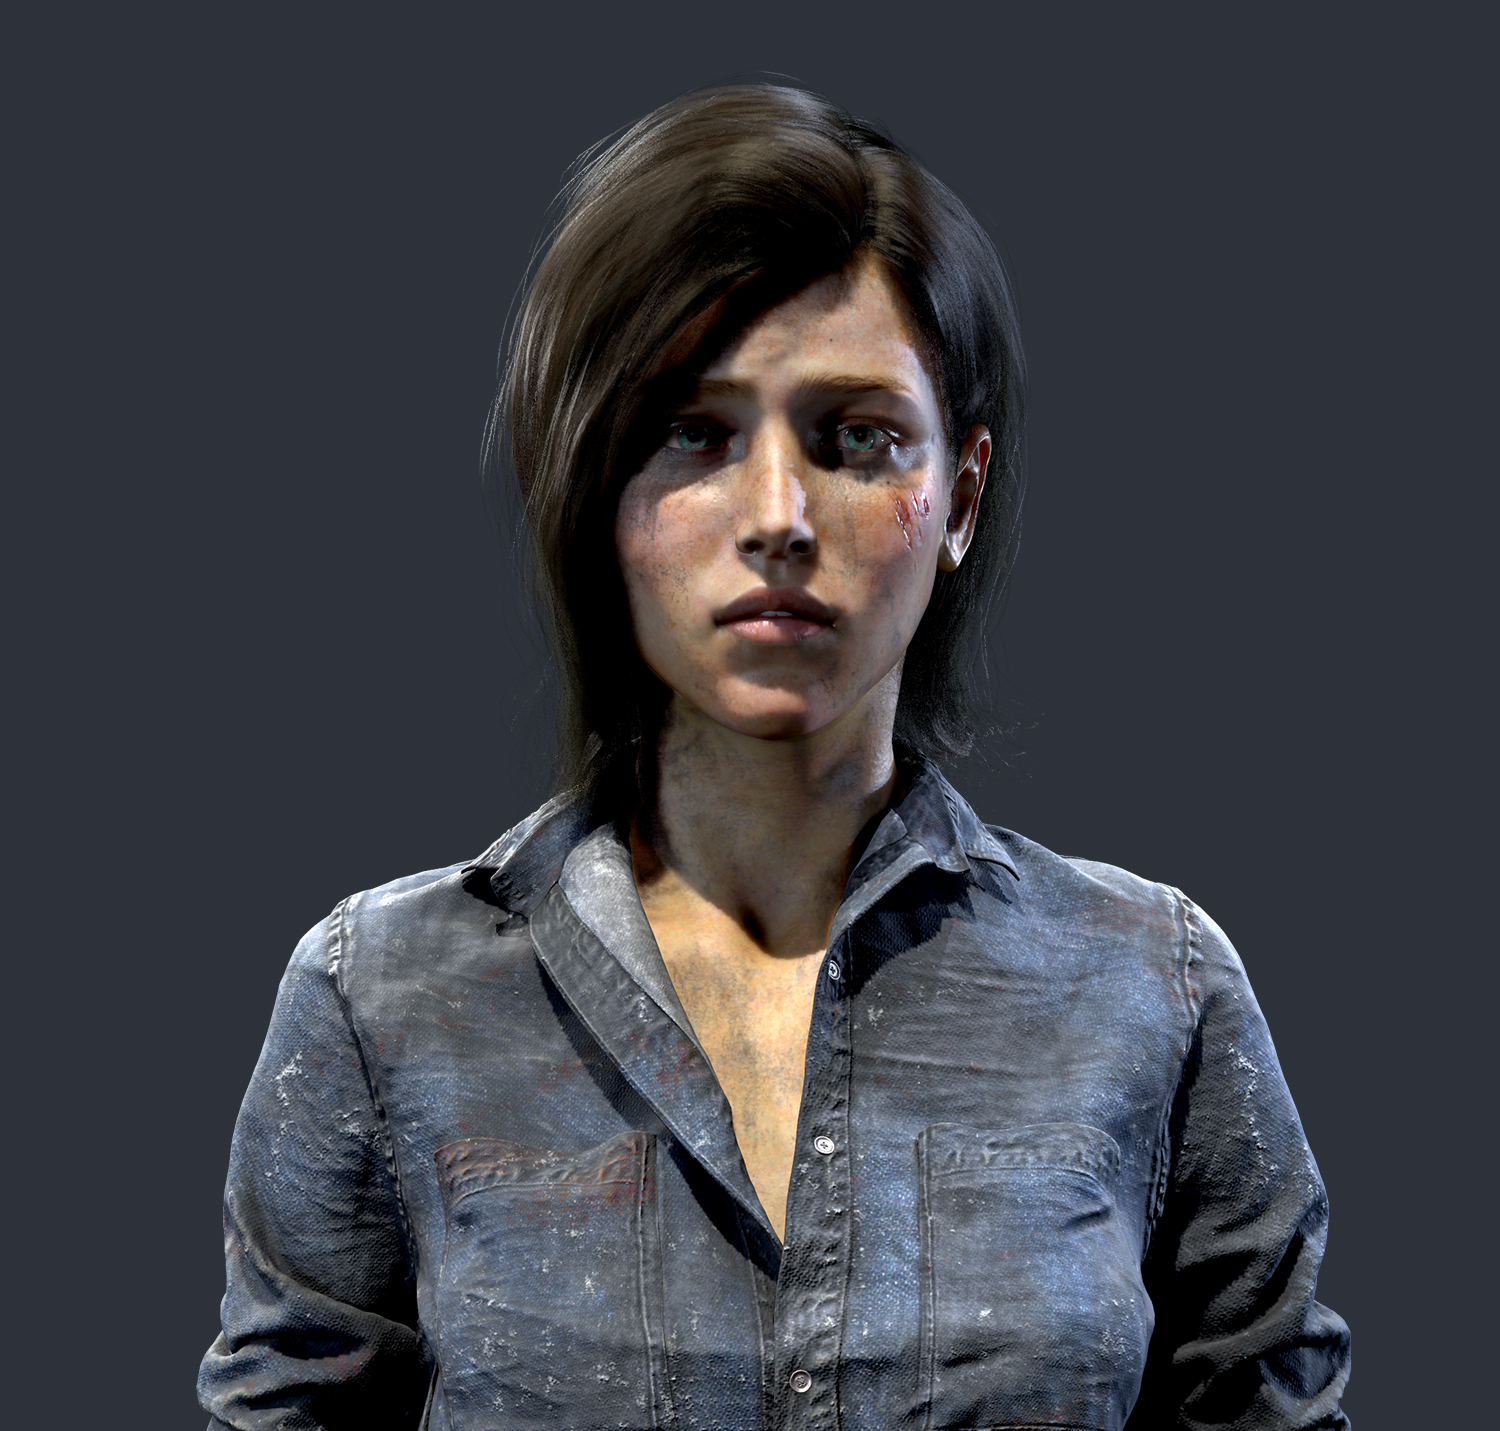 This Is What Ellie From The Last Of Us Looks Like Grown Up uAZqAig